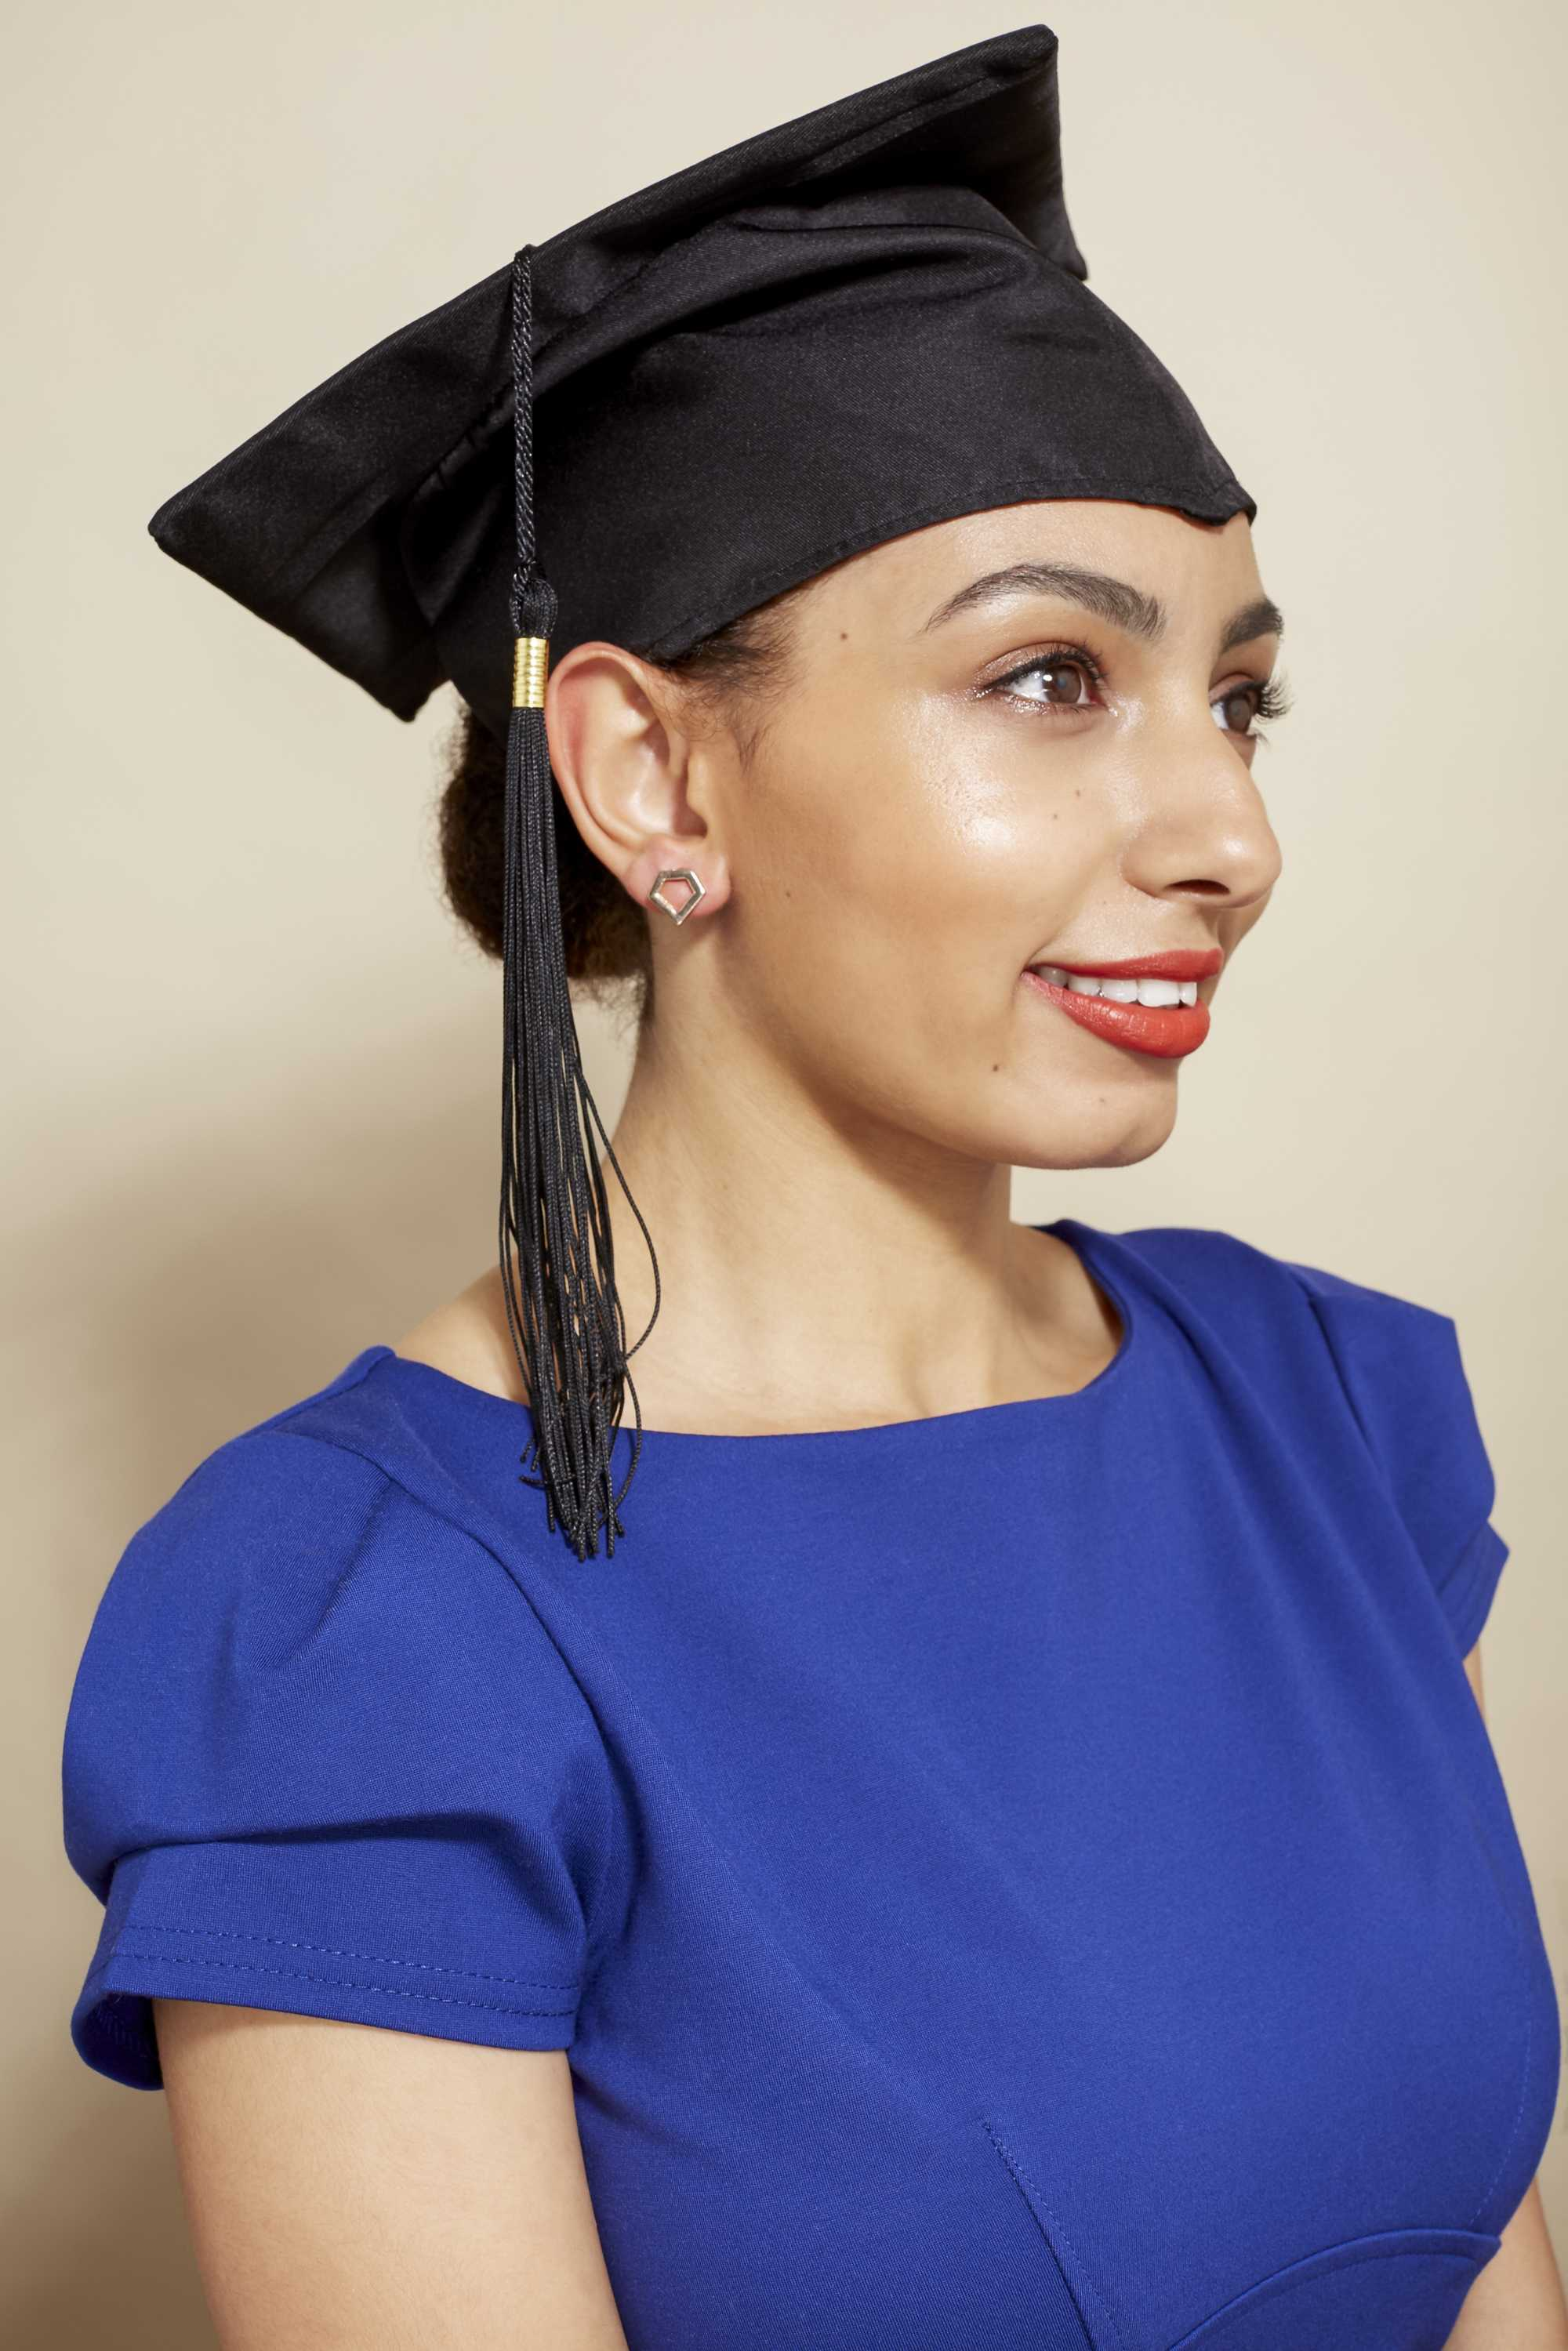 10 Top Graduation Hairstyles To Wear With Your Cap